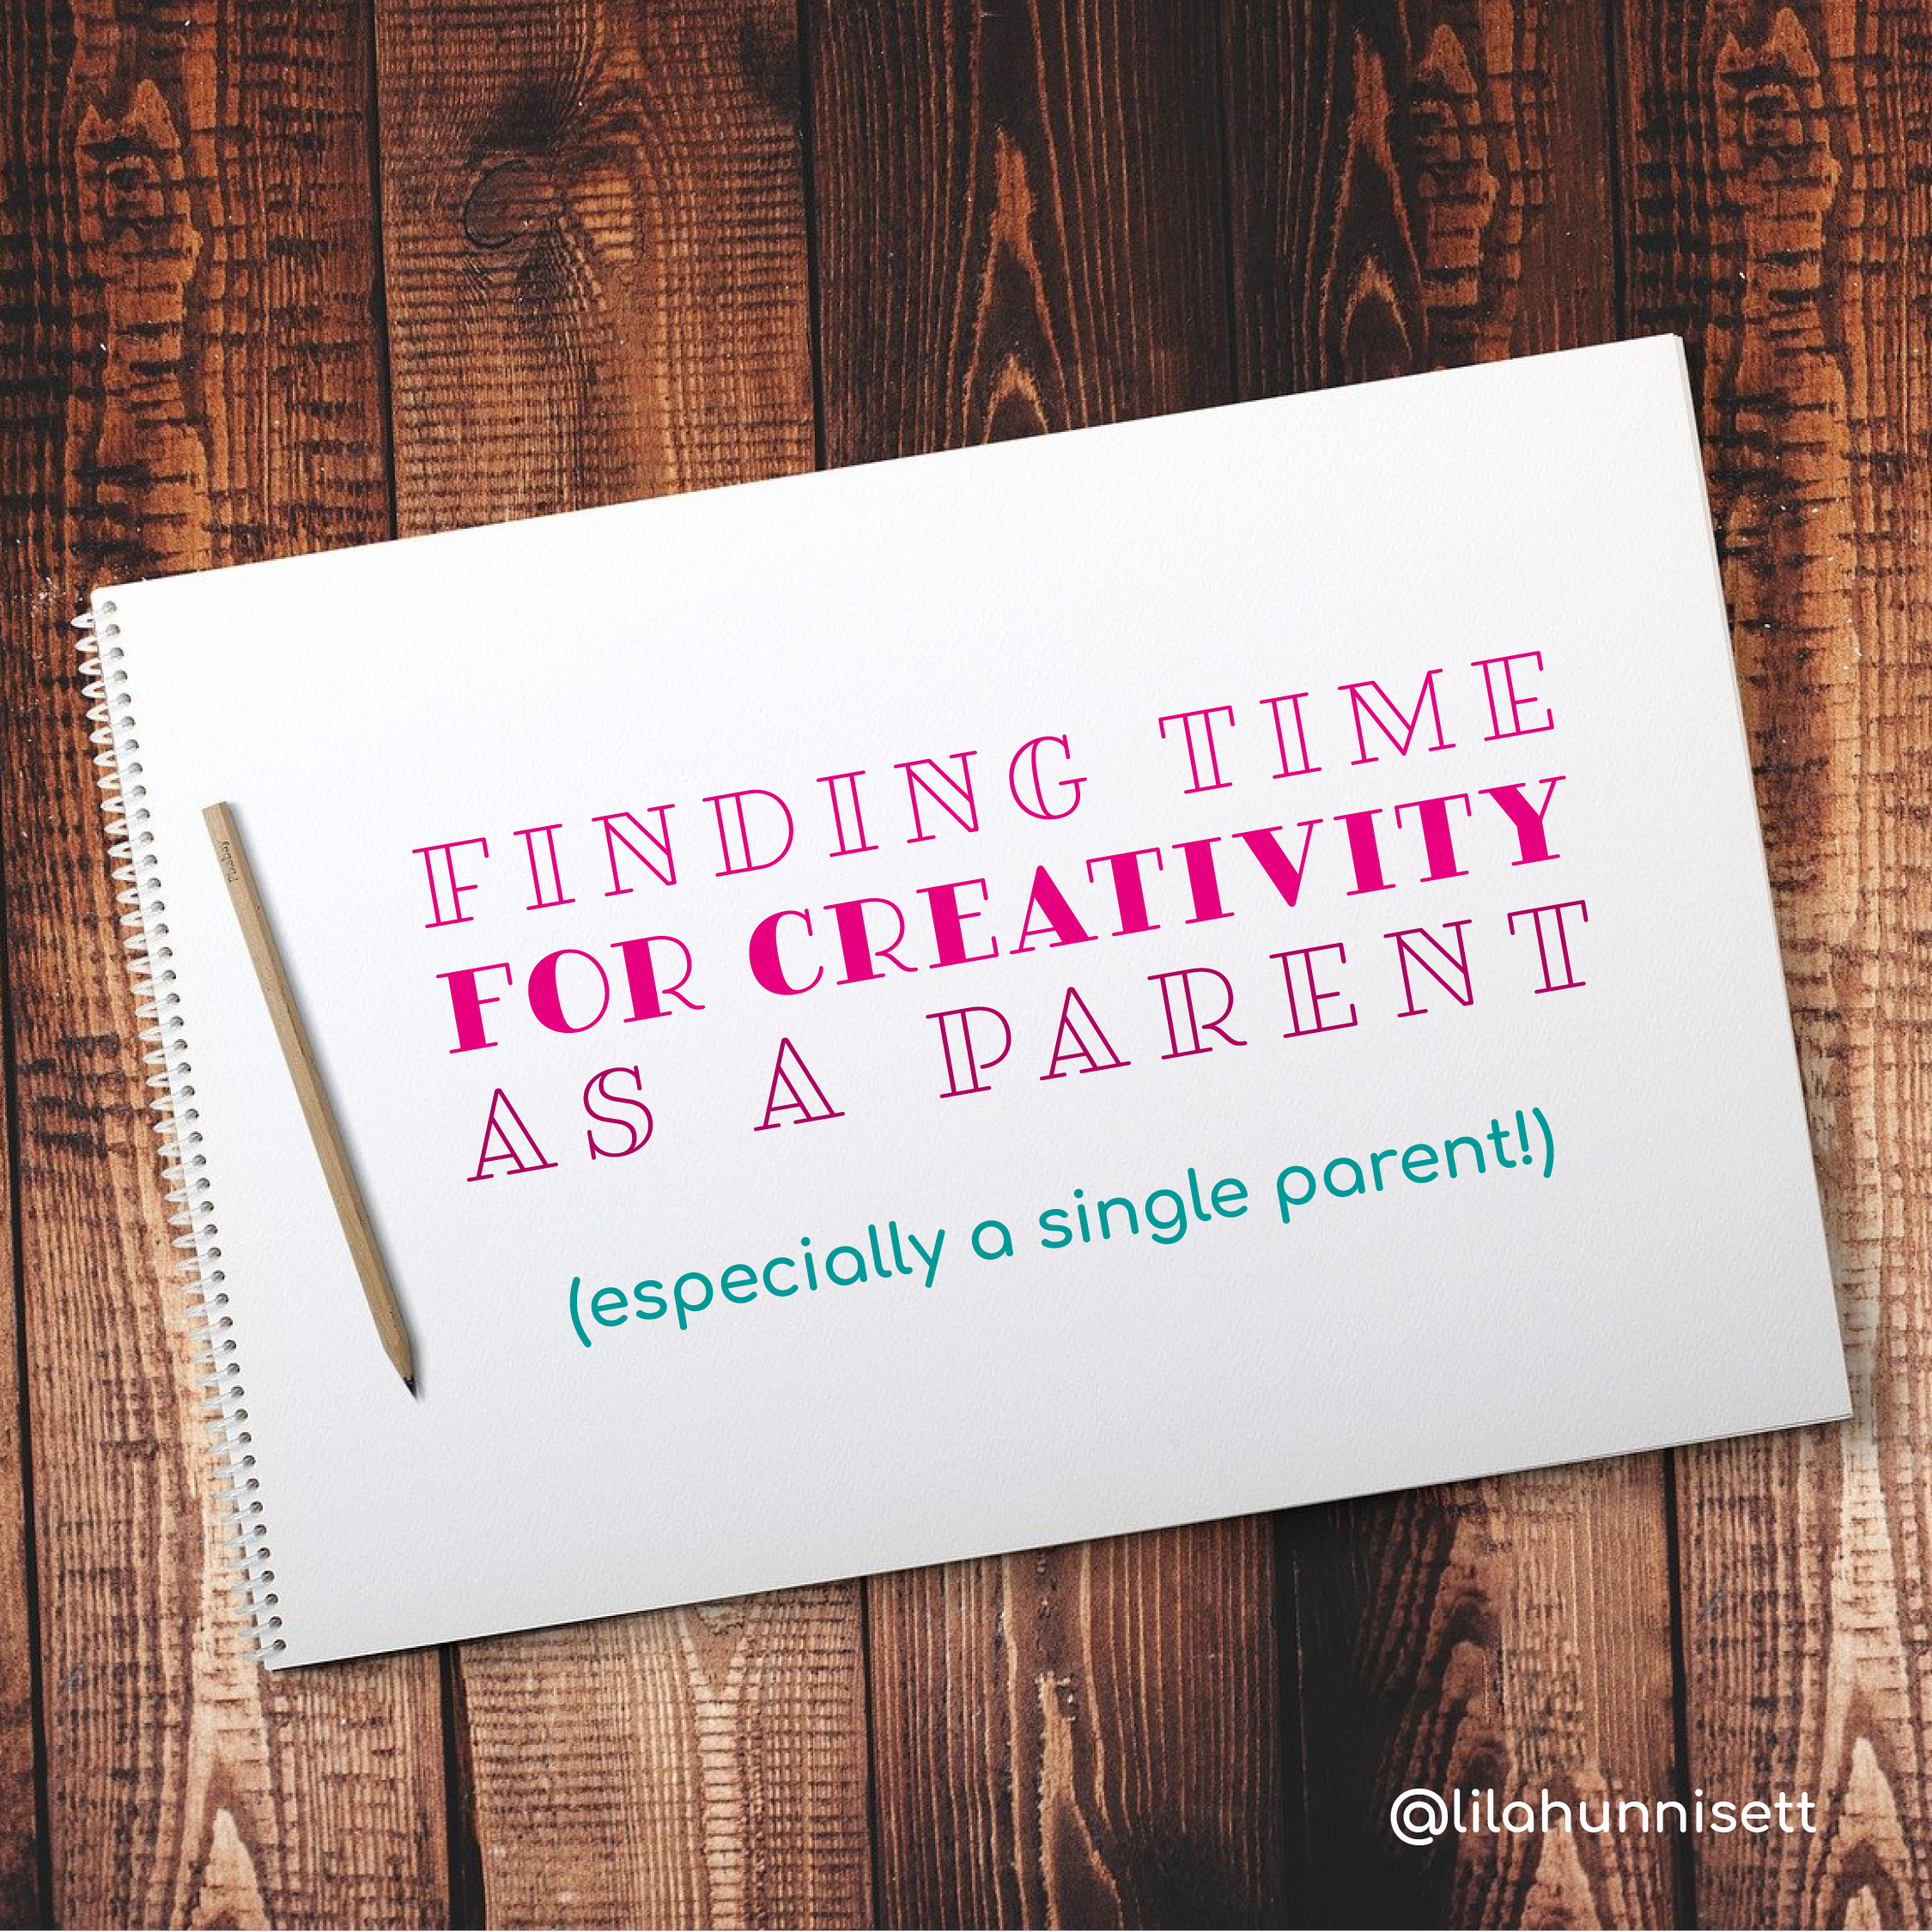 Finding time for creativity as a parent or single parent